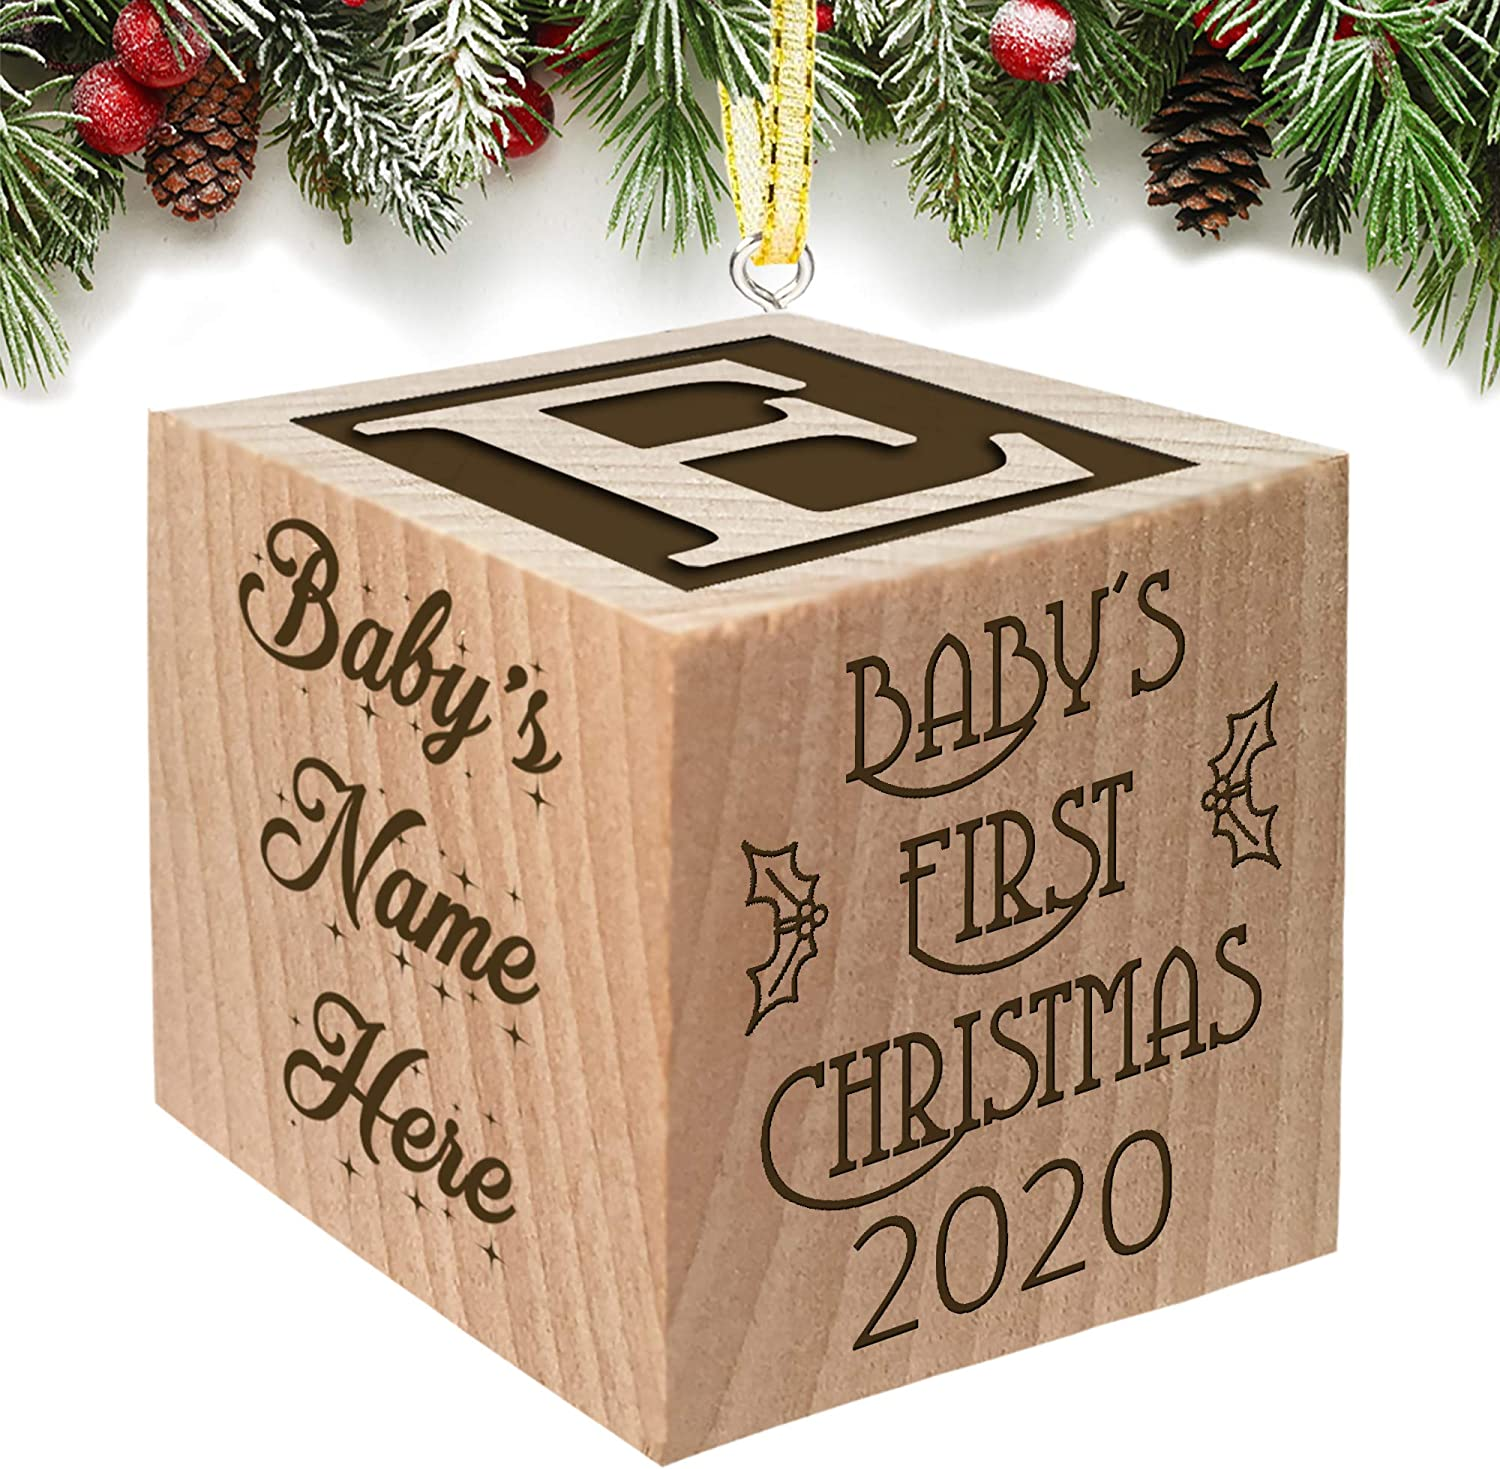 My First Christmas Ornament 2020 Amazon.com: Babies First Christmas Ornament Gift 2020 for Boy or